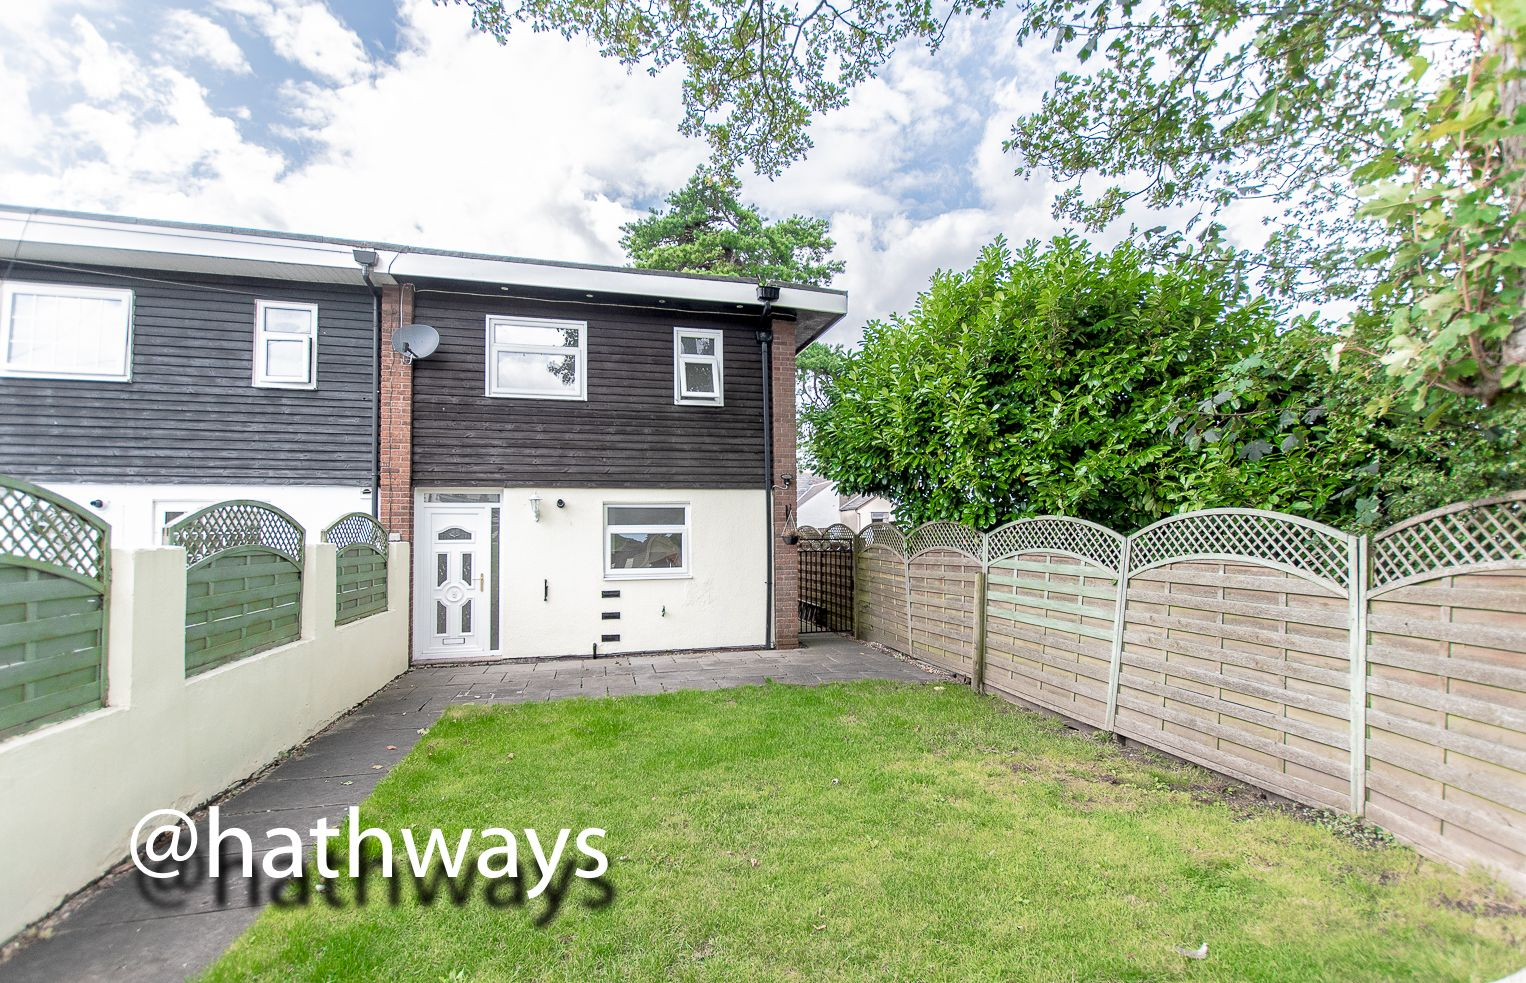 3 bed house for sale in Camelot Court - Property Image 1